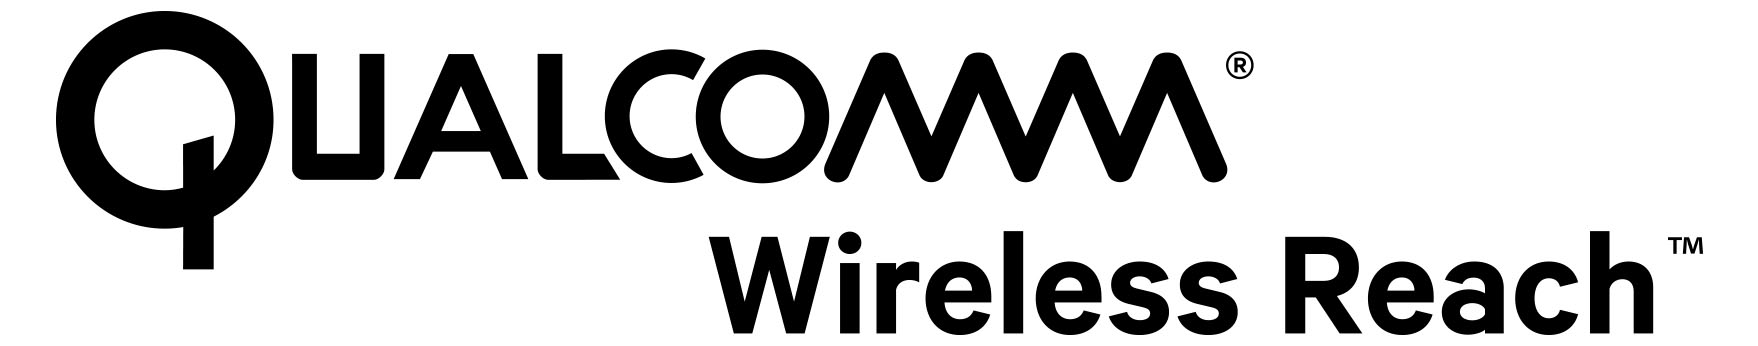 Qualcomm - Wireless Reach